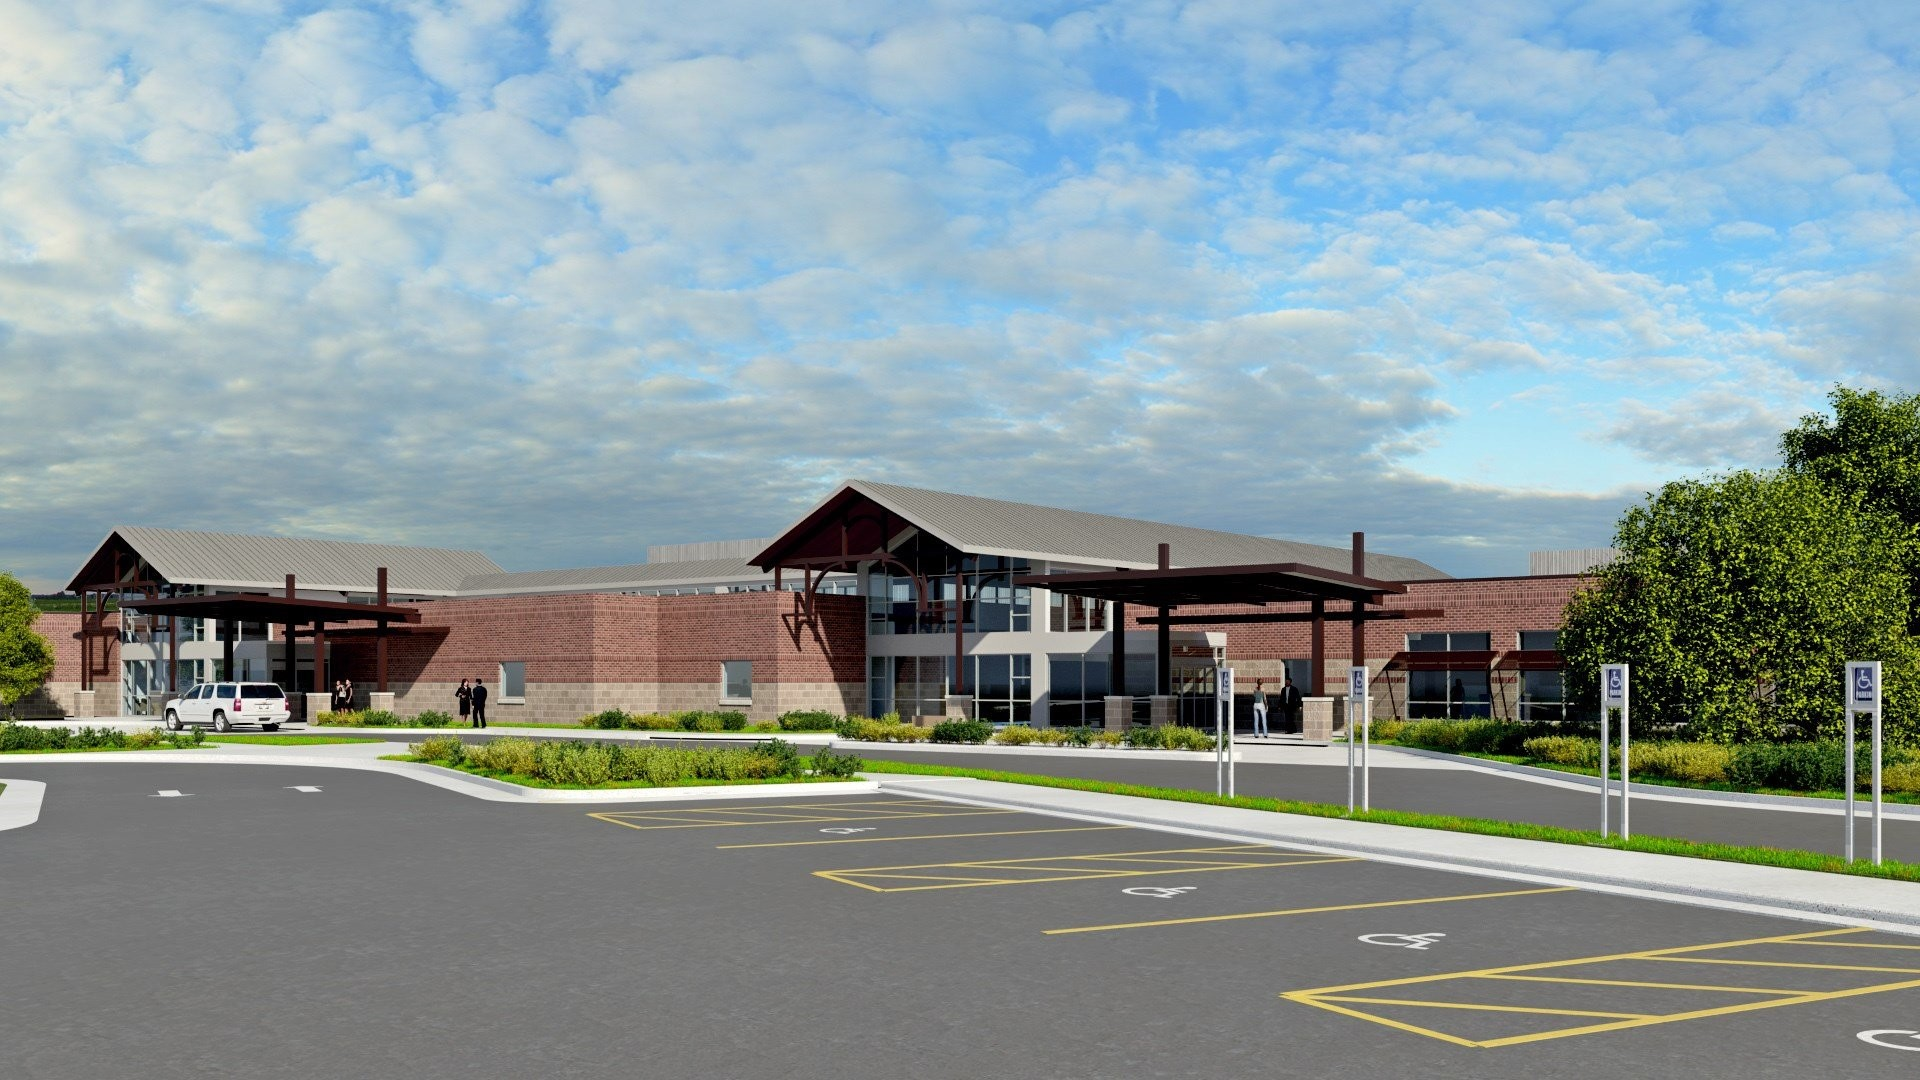 3D Rendering of the new facility under construction